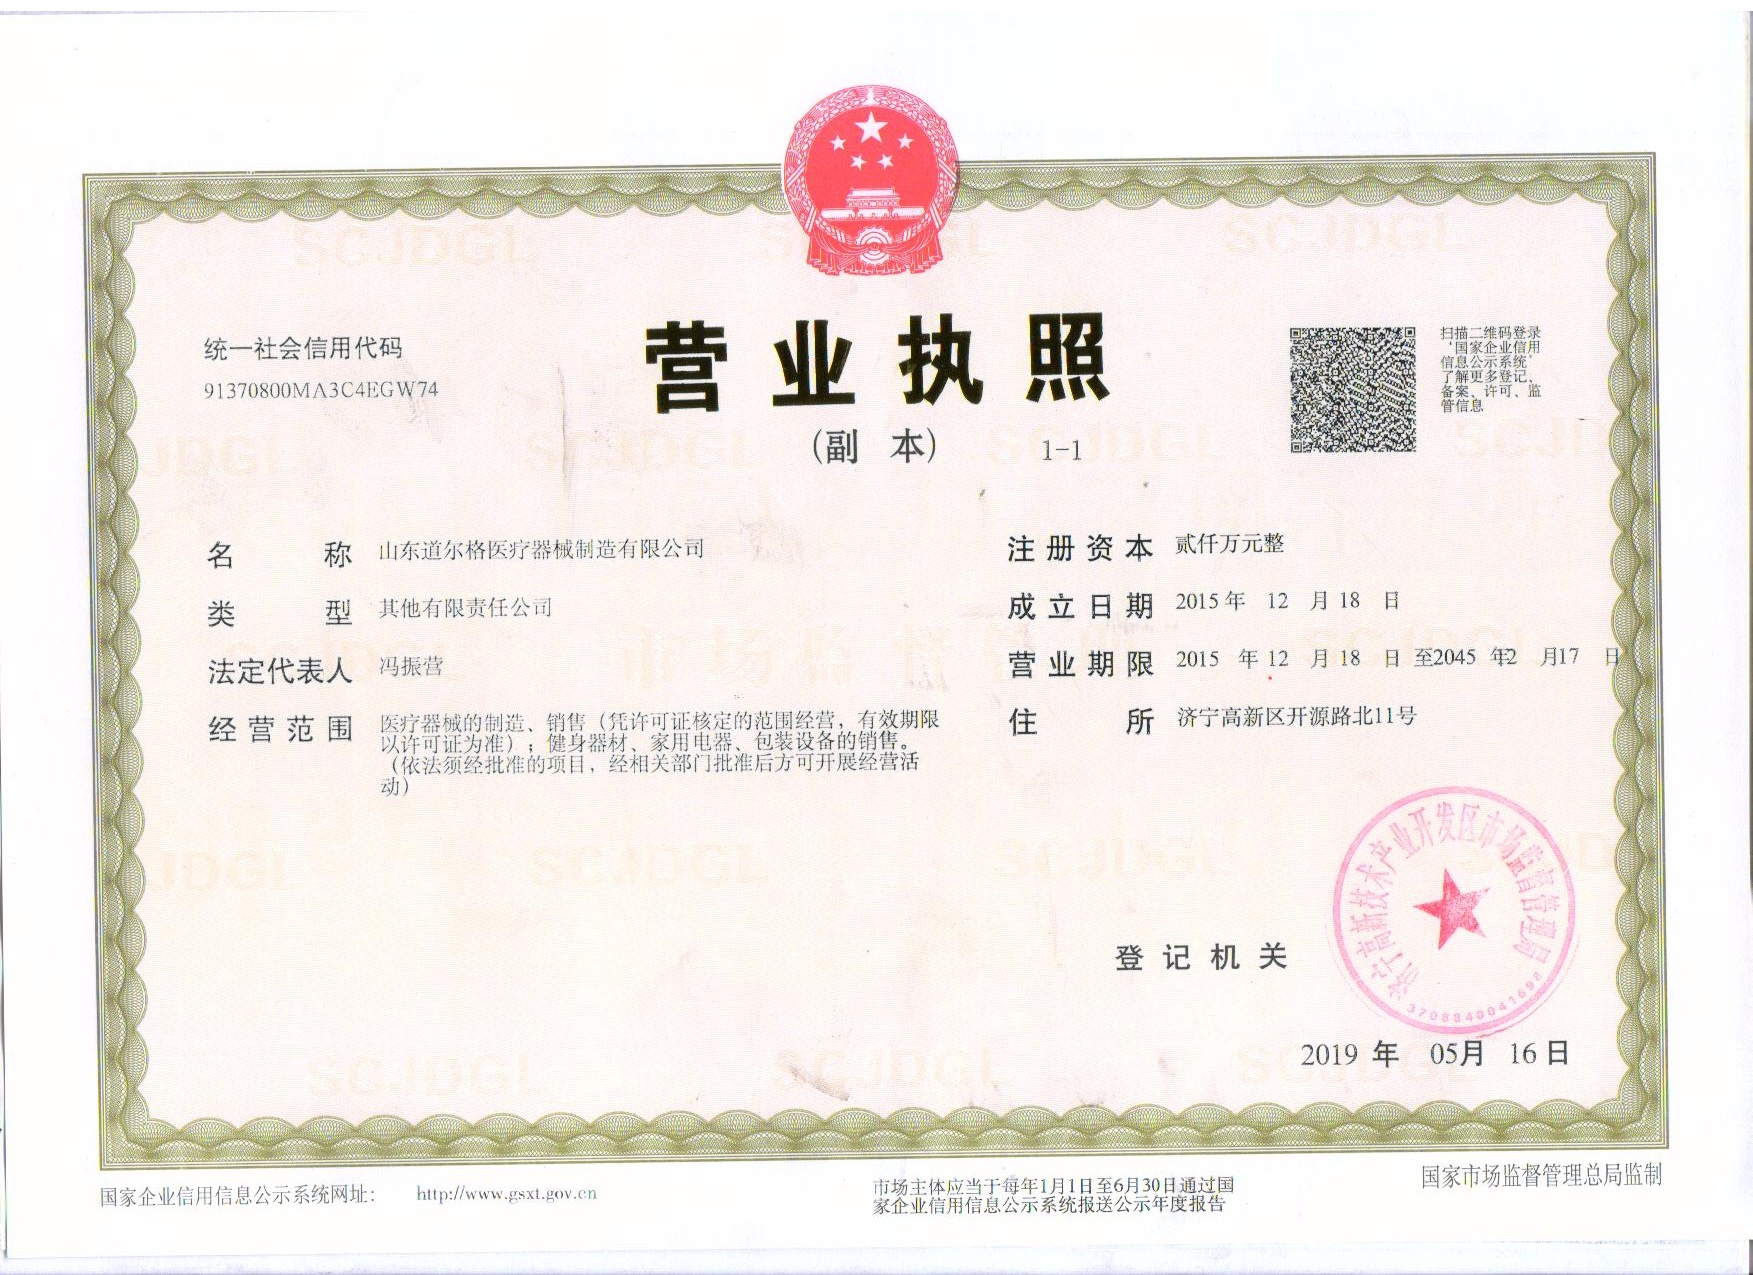 Shandong Draeger Medical Instrument Manufacturing Company Business License